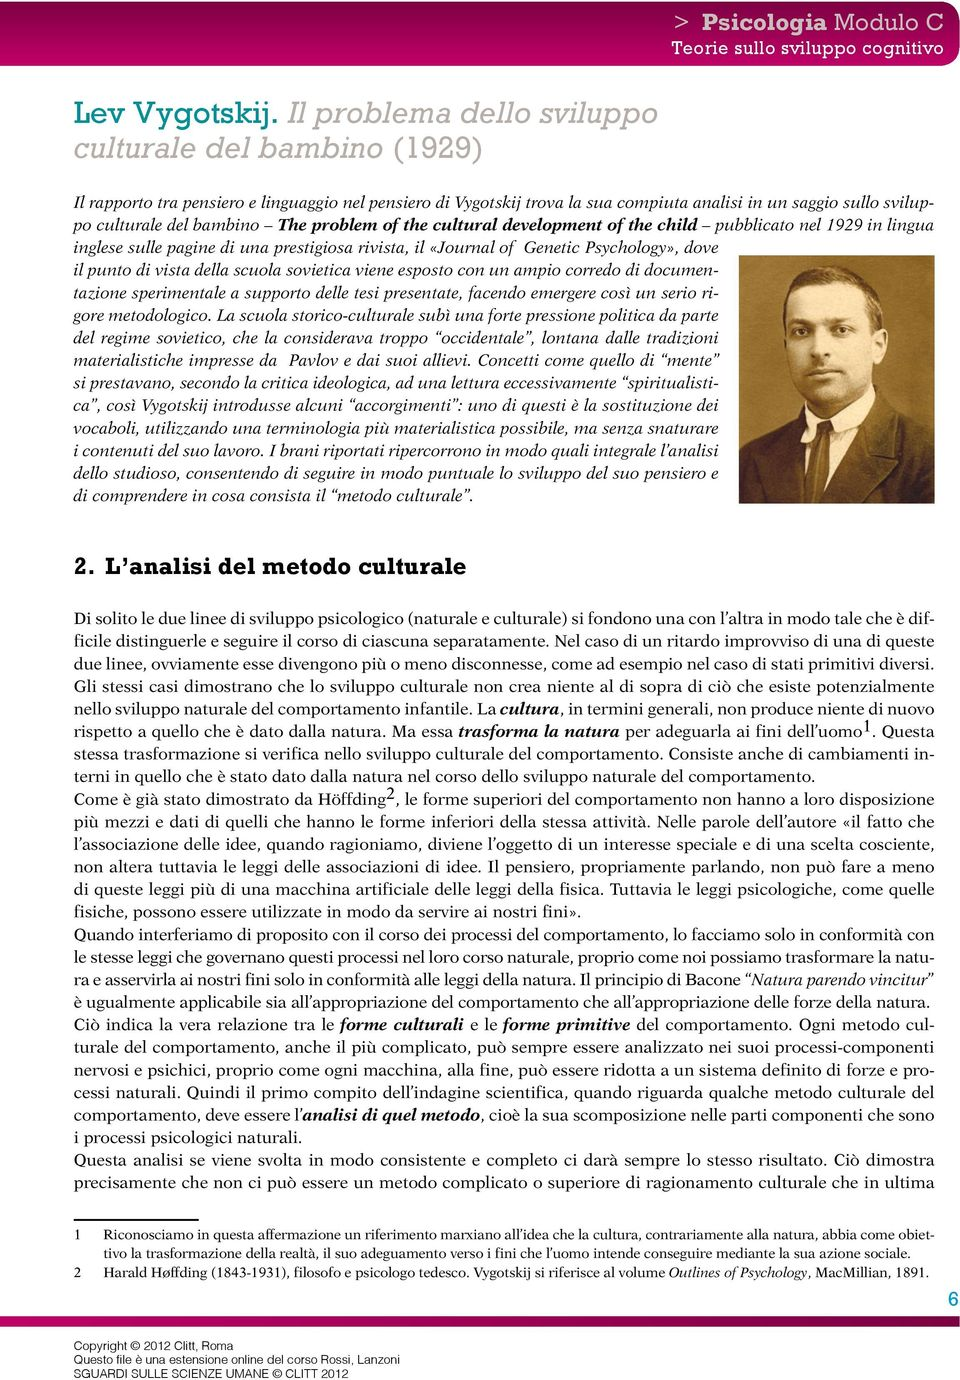 The problem of the cultural development of the child pubblicato nel 1929 in lingua inglese sulle pagine di una prestigiosa rivista, il «Journal of Genetic Psychology», dove il punto di vista della